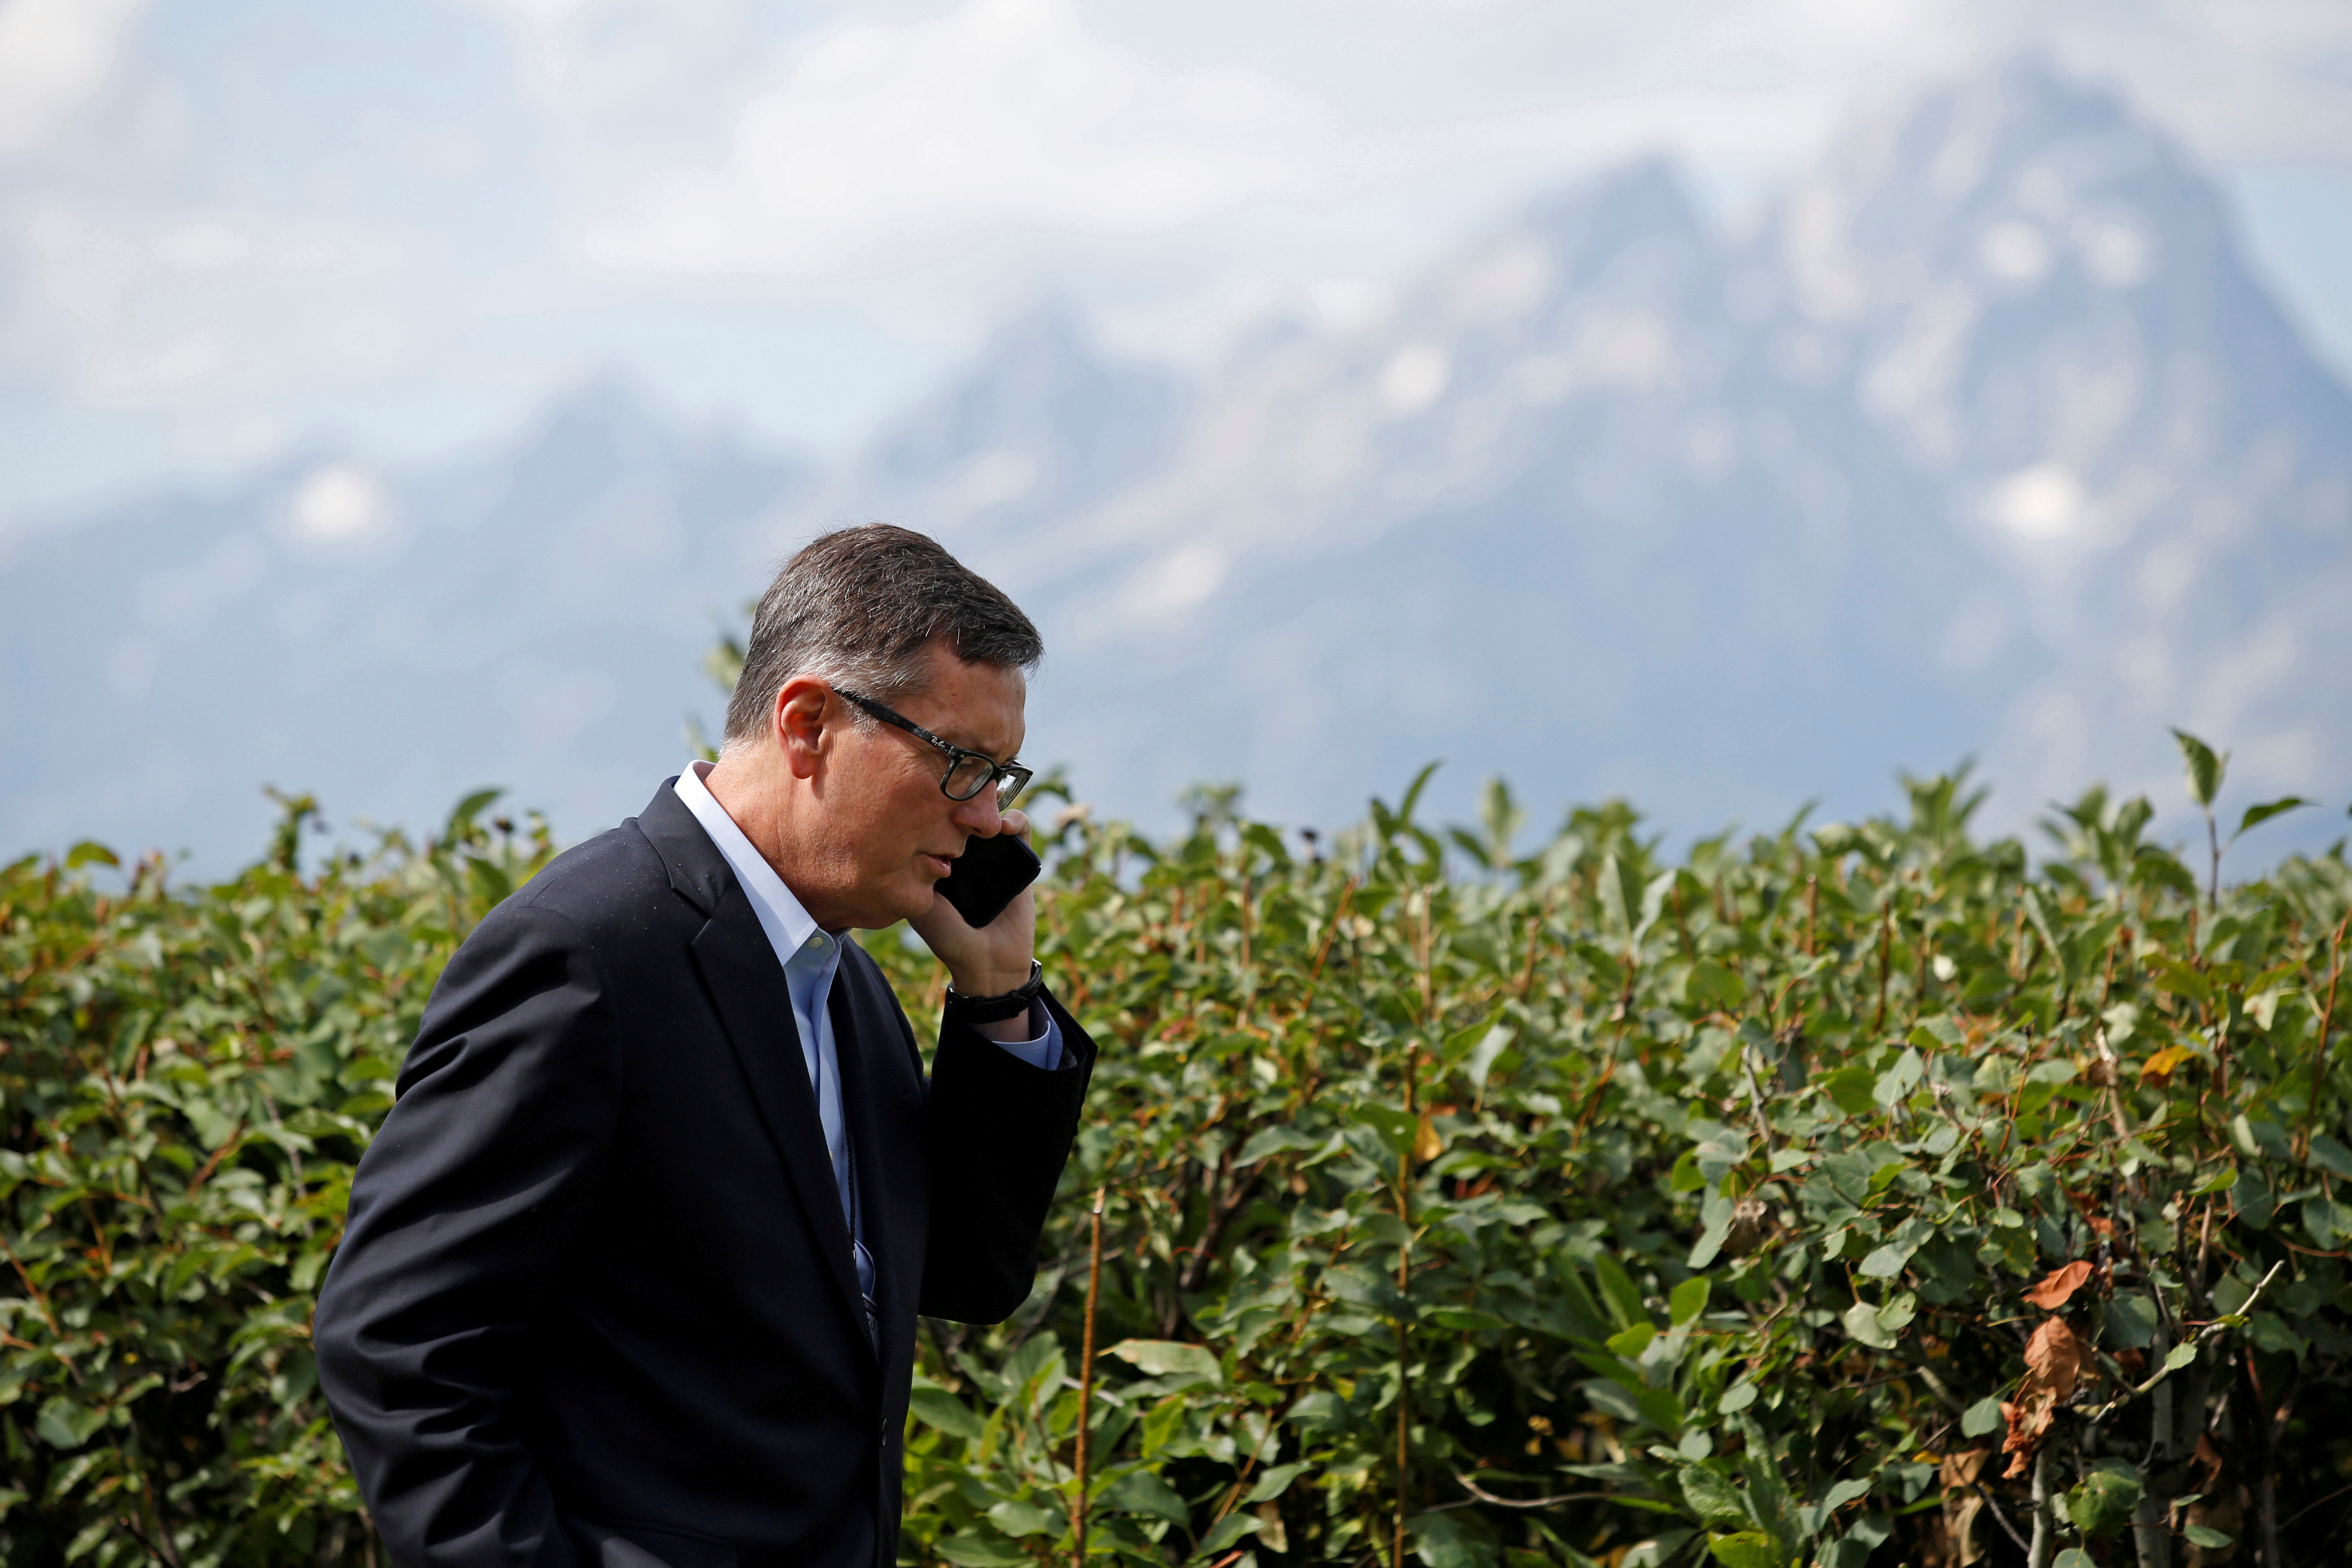 Federal Reserve Vice Chair Richard Clarida talks on the phone during the three-day